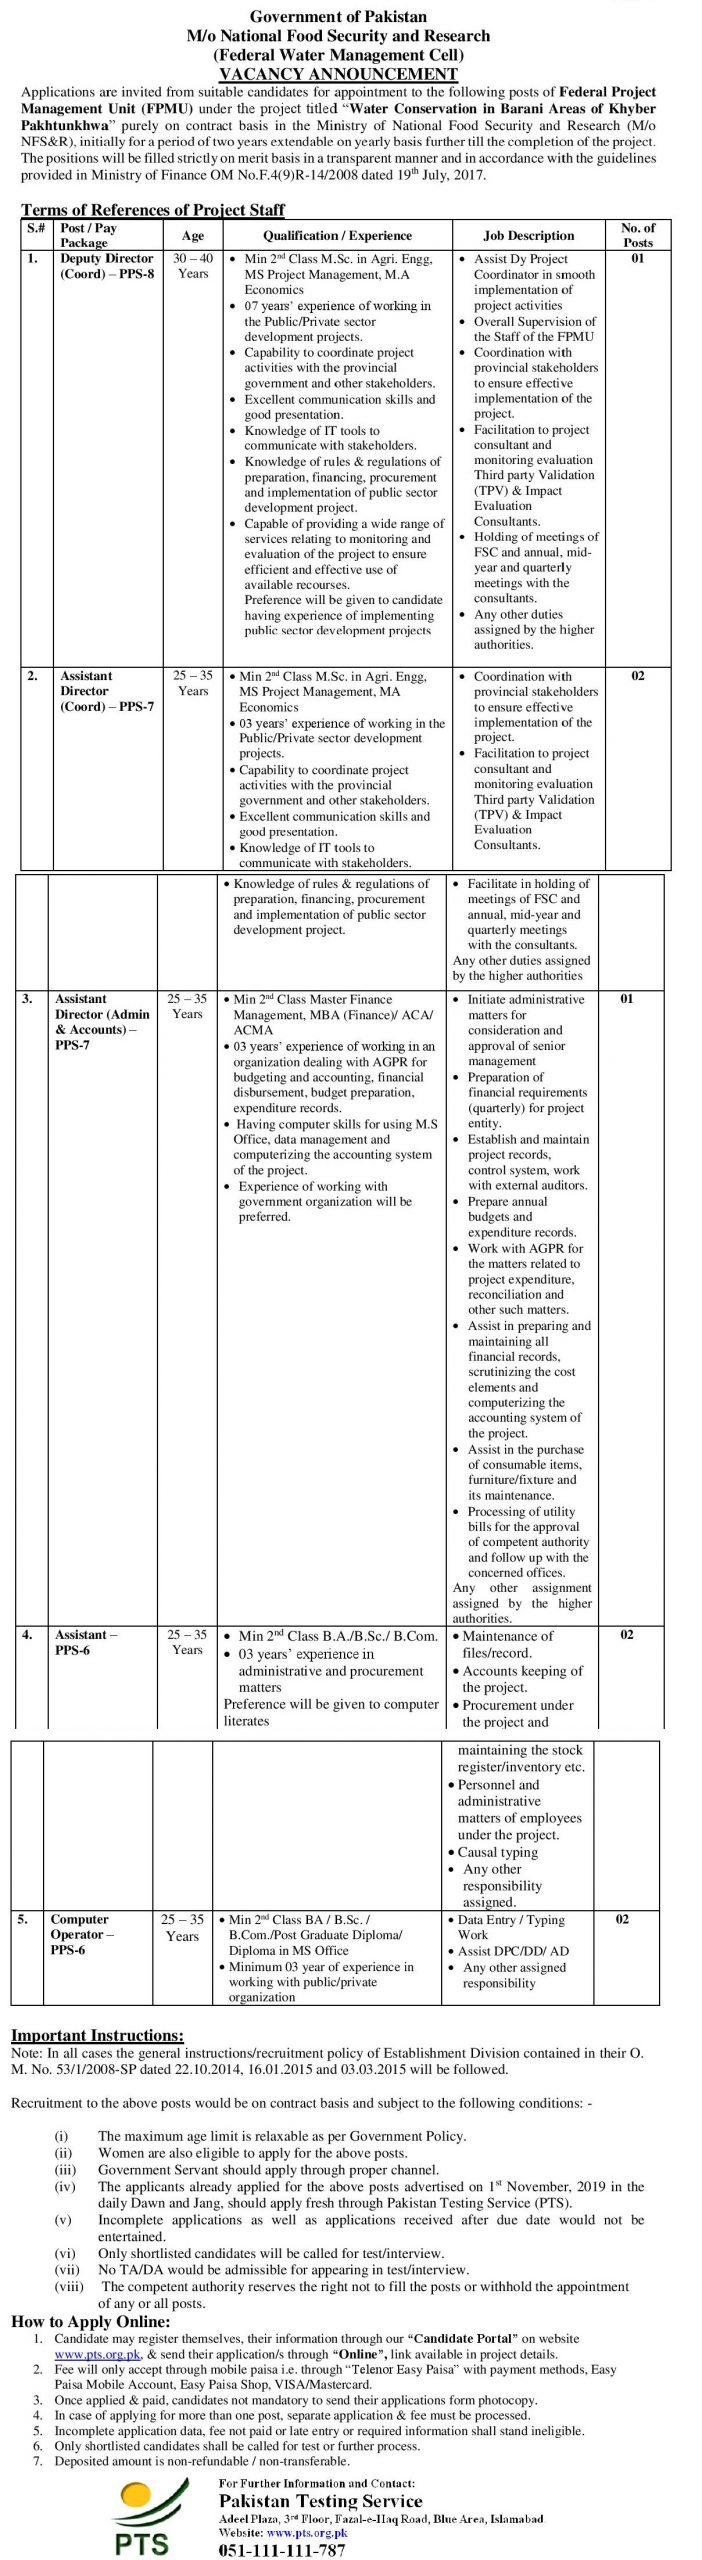 Water Conservation Barani Areas Jobs KPK PTS Roll No Slip